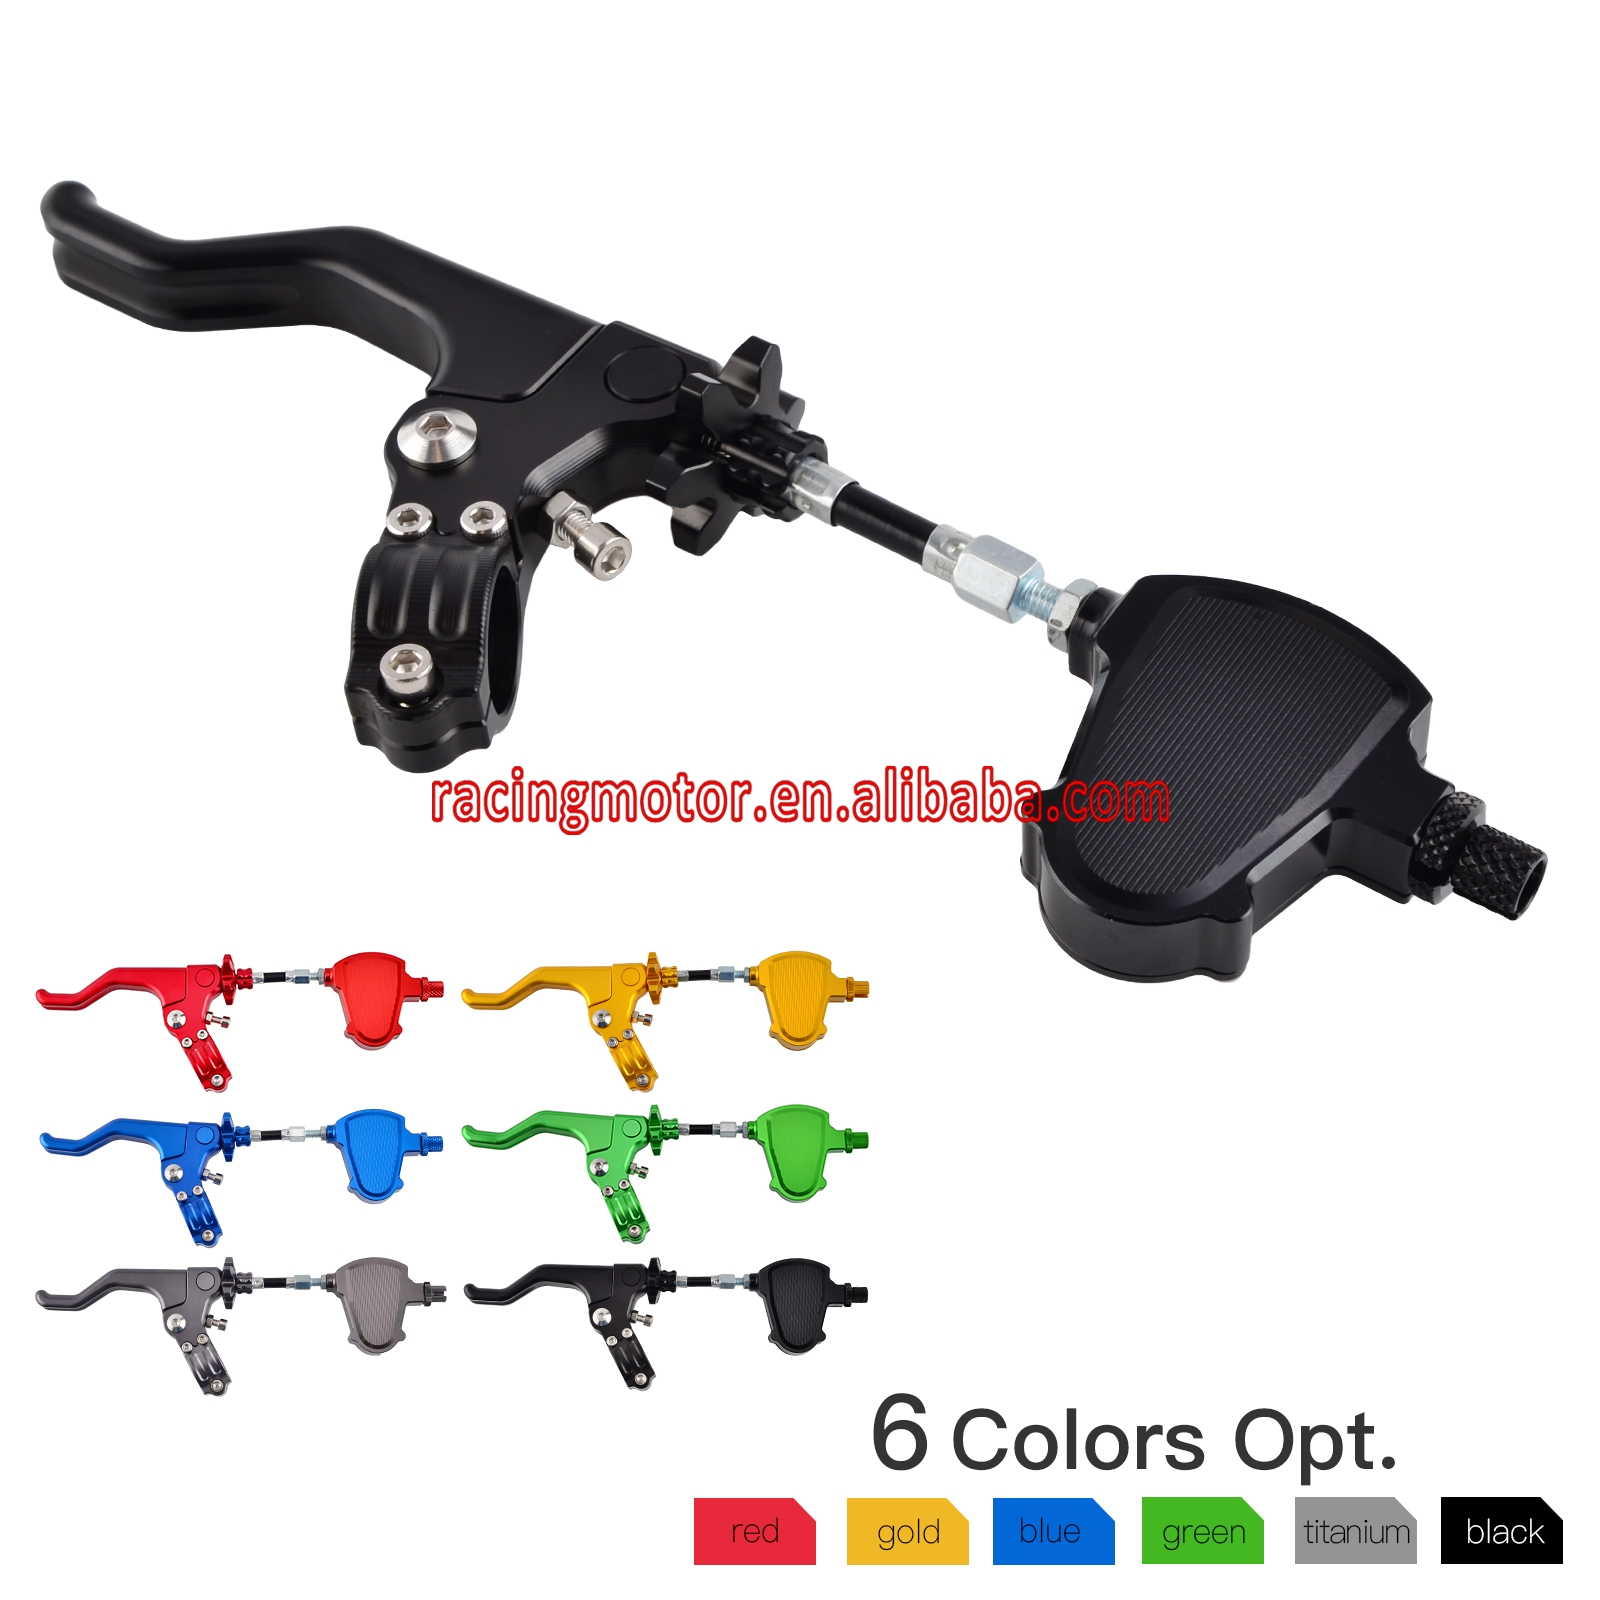 CNC Stunt Clutch Pull Cable Lever Easy System for Yamaha Honda Kawasaki Suzuki Buell Ducati Triumph CR CRF YZ WR KX KLX RM CBR motorcycle universal 7 color aluminum stunt clutch lever easy pull cable system for ktm honda suzuki yamaha kawasaki dirt bike